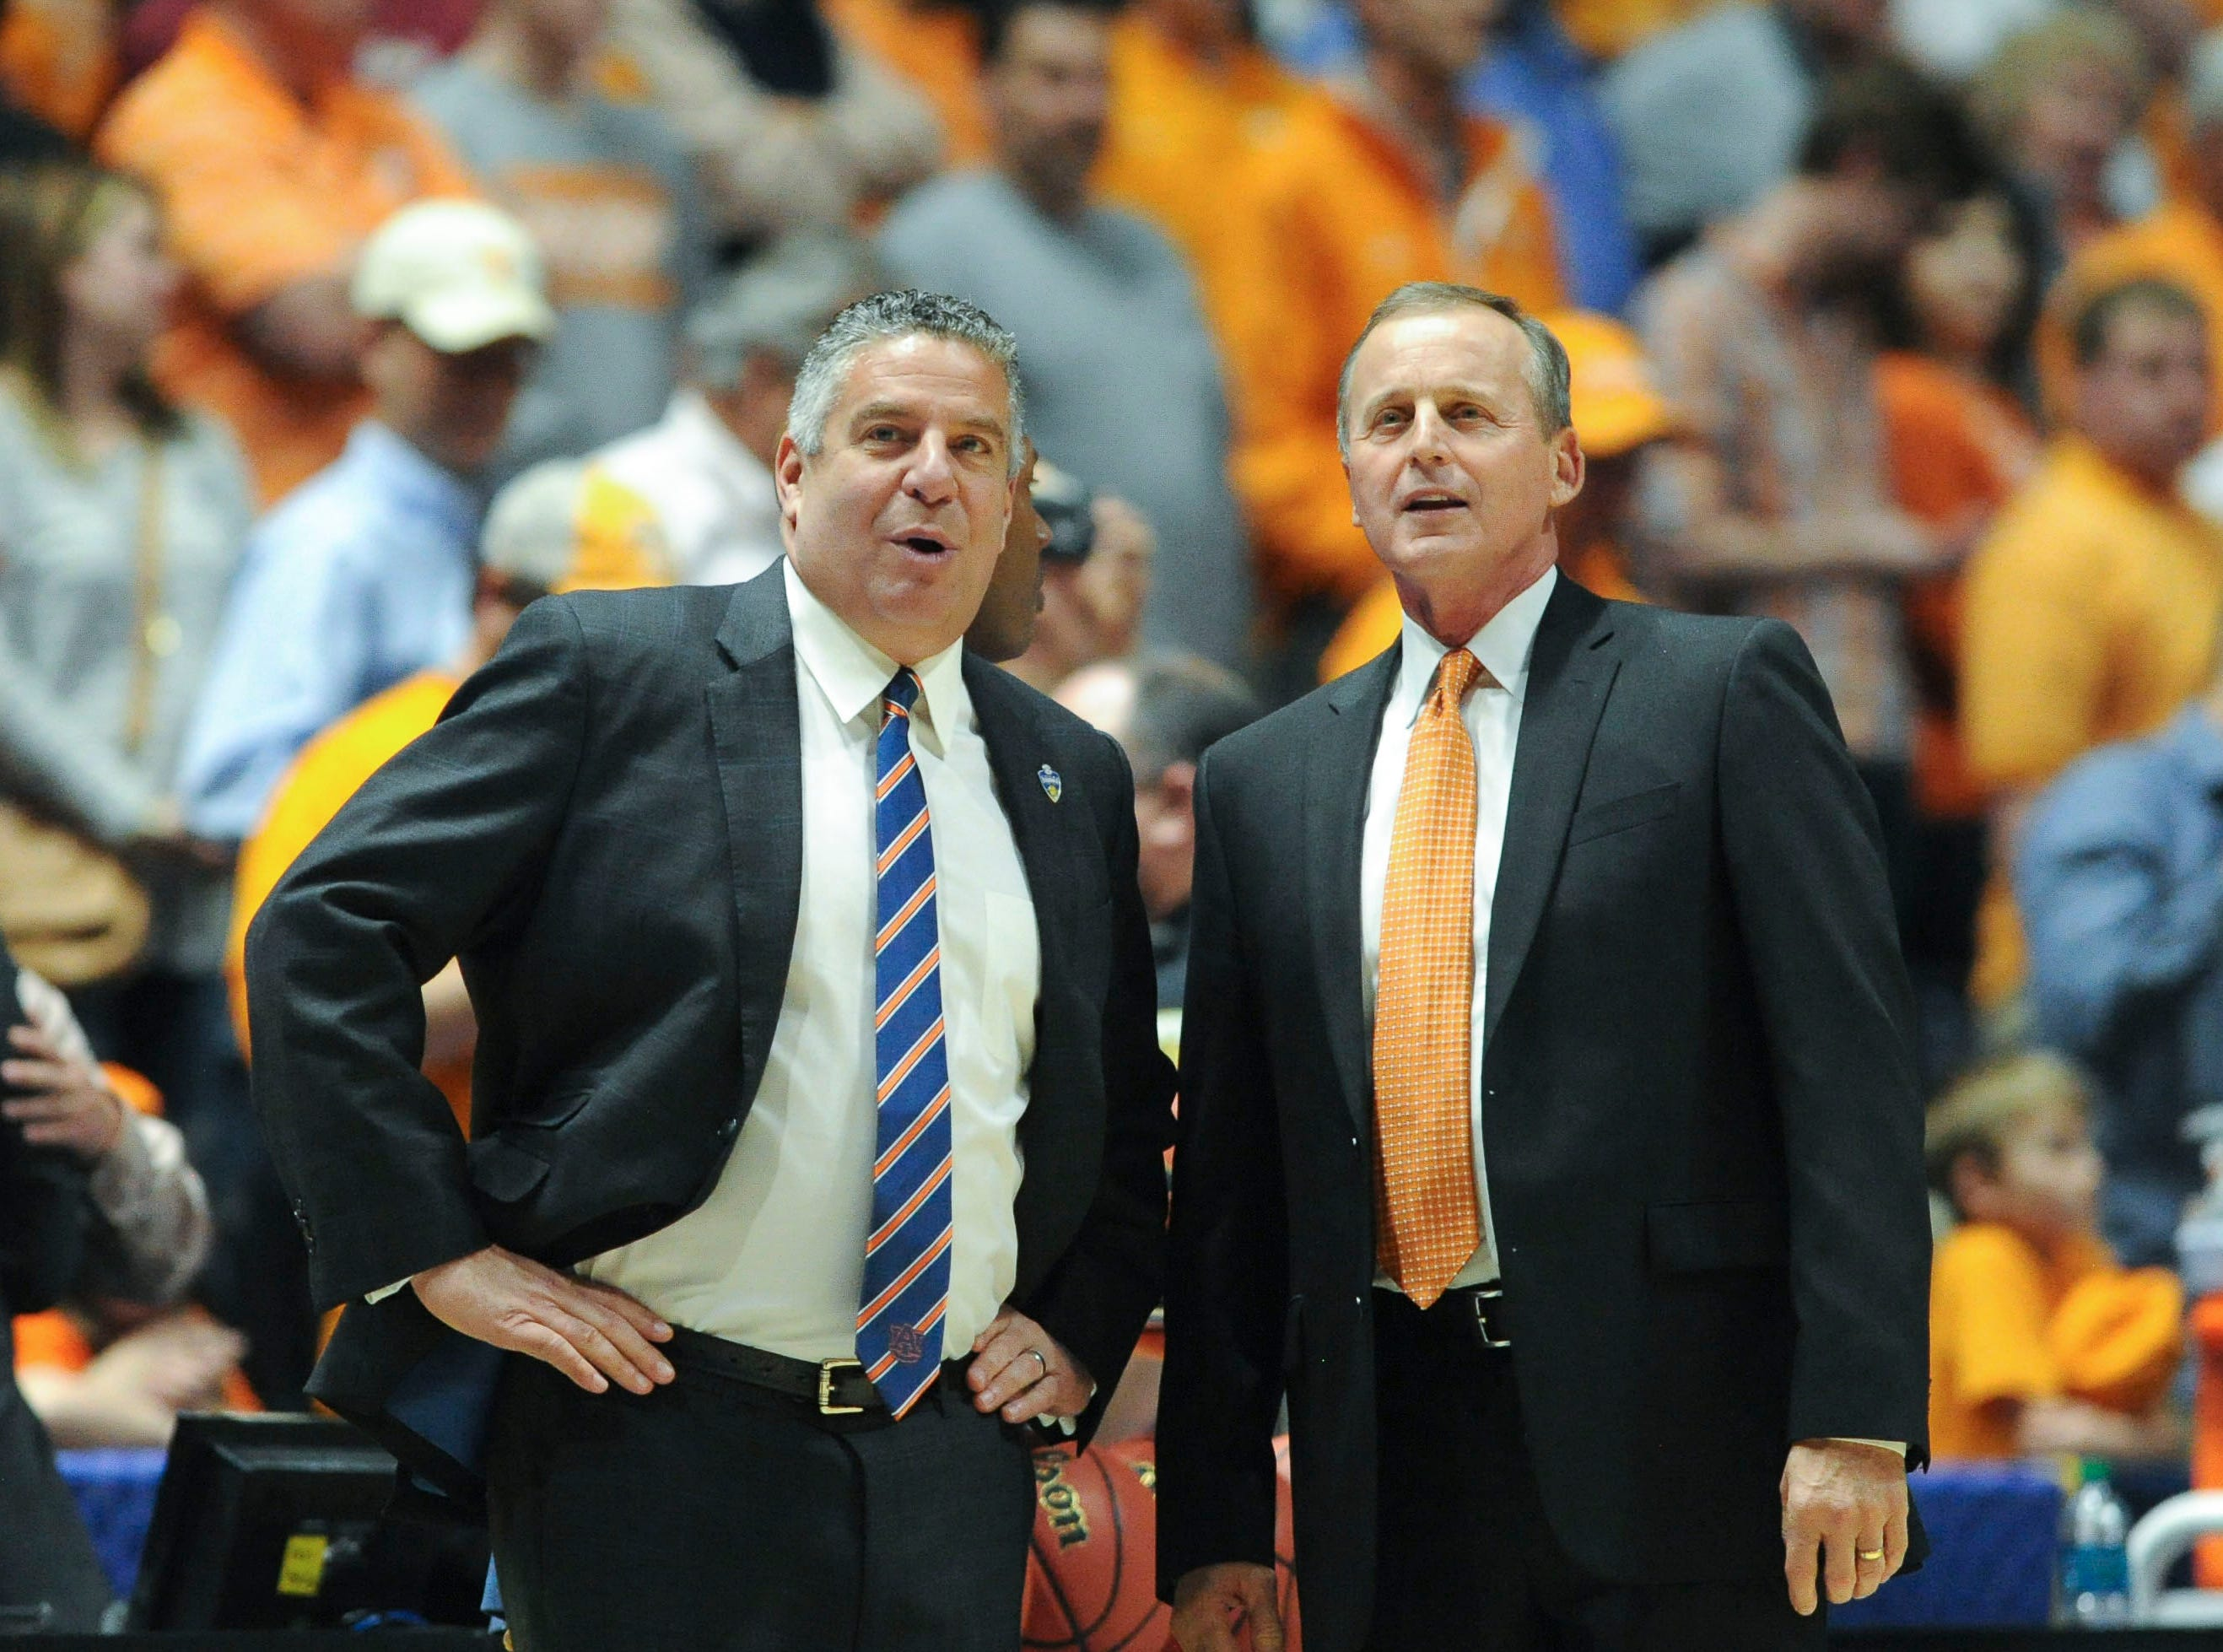 Auburn head coach Bruce Pearl and Tennessee head coach Rick Barnes chat at mid court before an SEC tournament game at Bridgestone Arena in Nashville, Tenn. on Wednesday, March 9, 2016. Tennessee won 97-59. (ADAM LAU/NEWS SENTINEL)